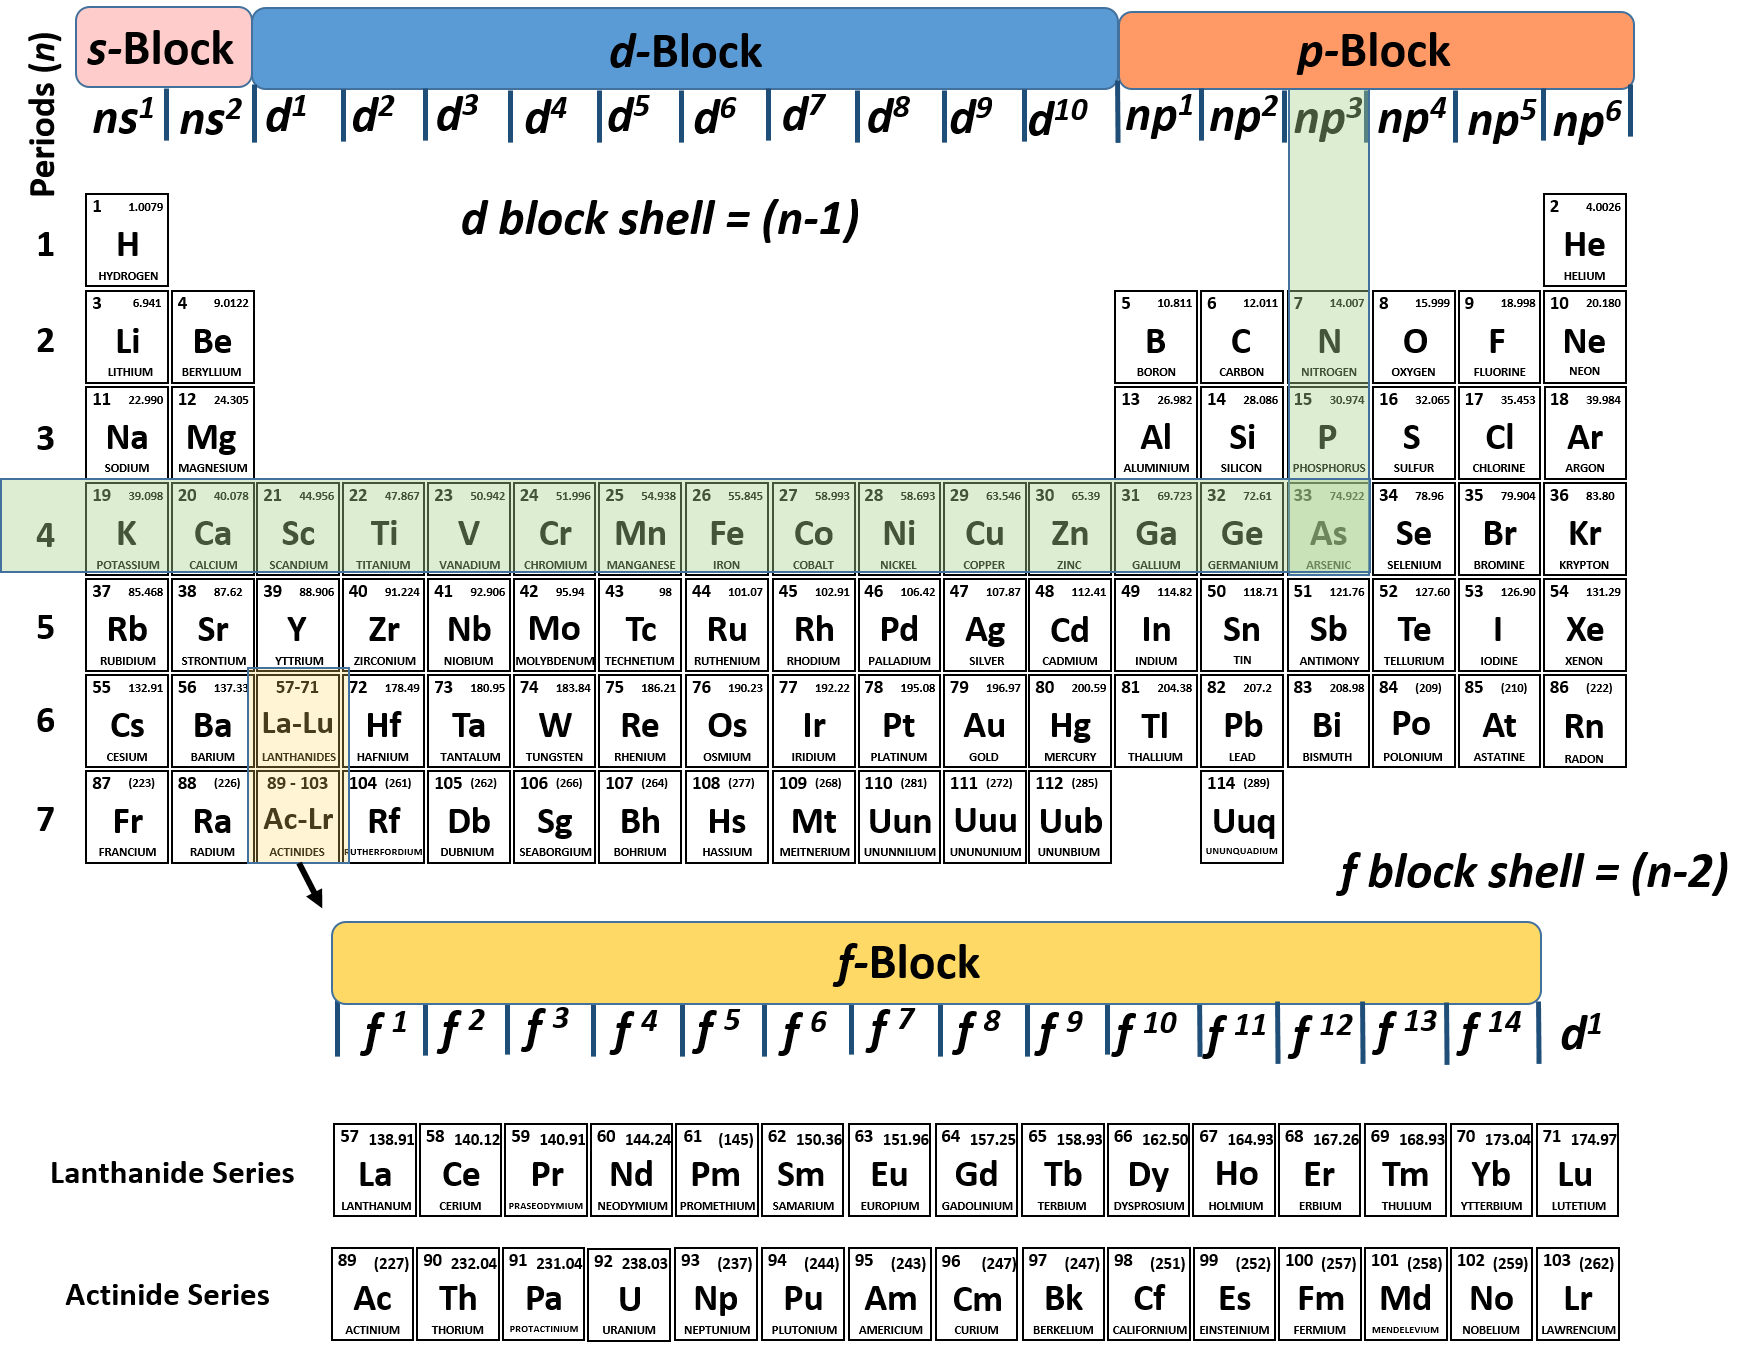 we can see that arsenic ends in the p block at np3 and if we follow the period back to the left we can see the n4 therefore arsenic ends in - In The Periodic Table As The Atomic Number Increases From 11 To 17